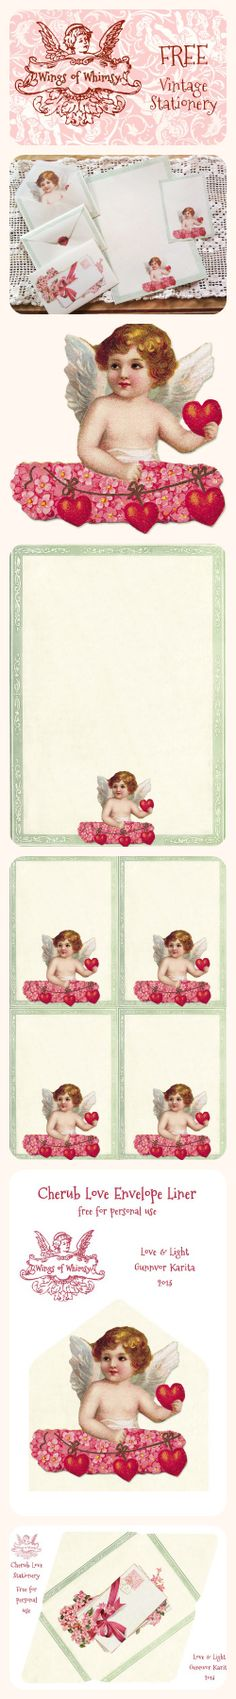 Wings of Whimsy: Vintage Stationery - free for personal use #printable #freebie #valentine envelope liners